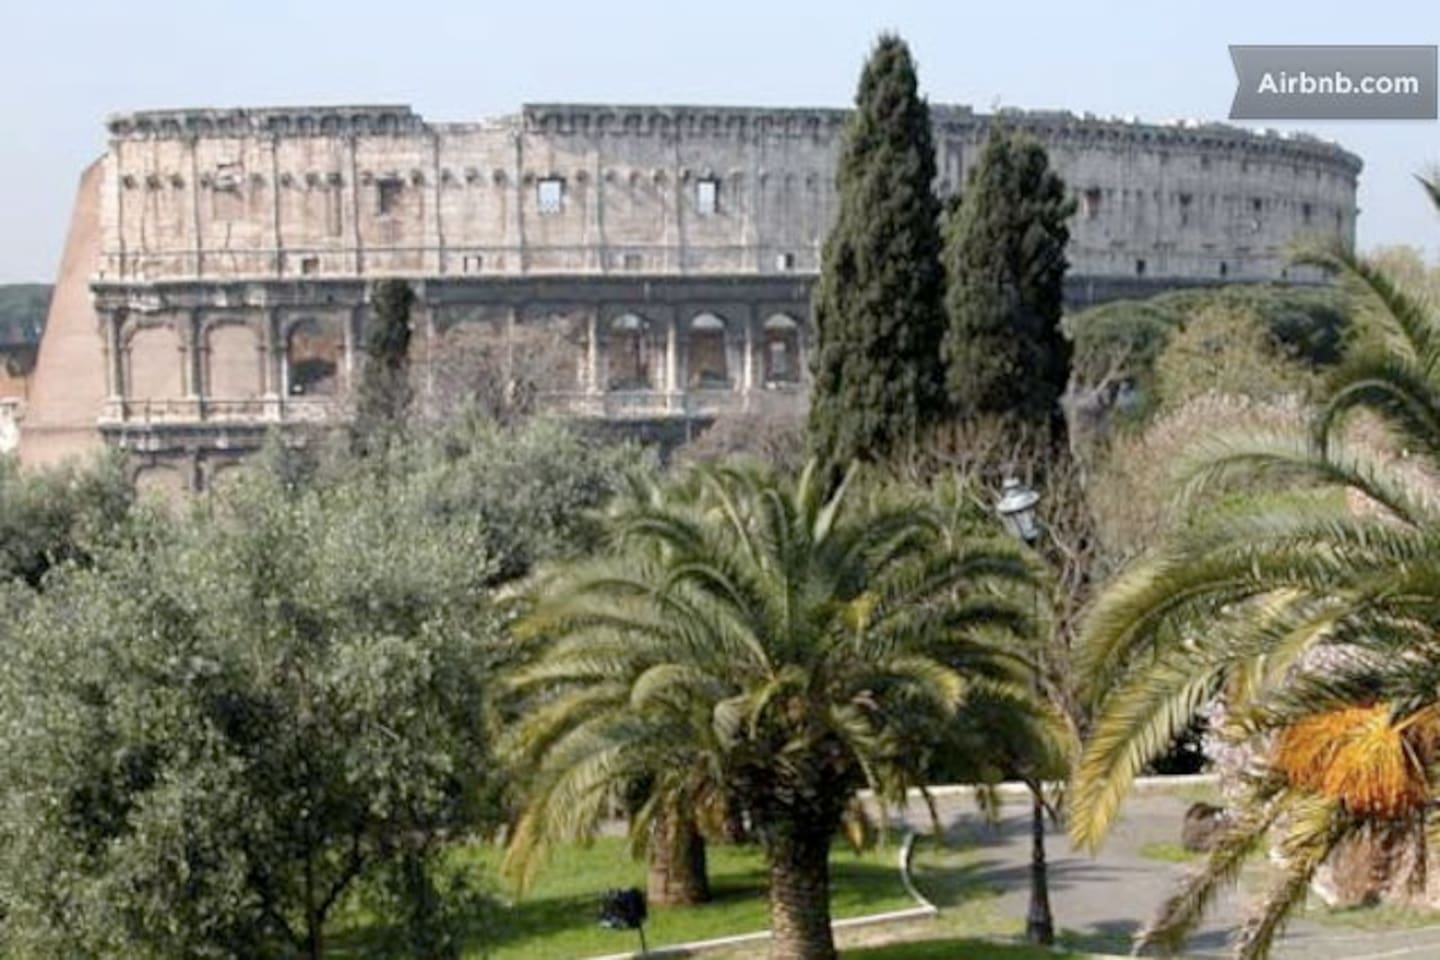 The Colle Oppio park with Colosseum. The park is located in front of the apartment.